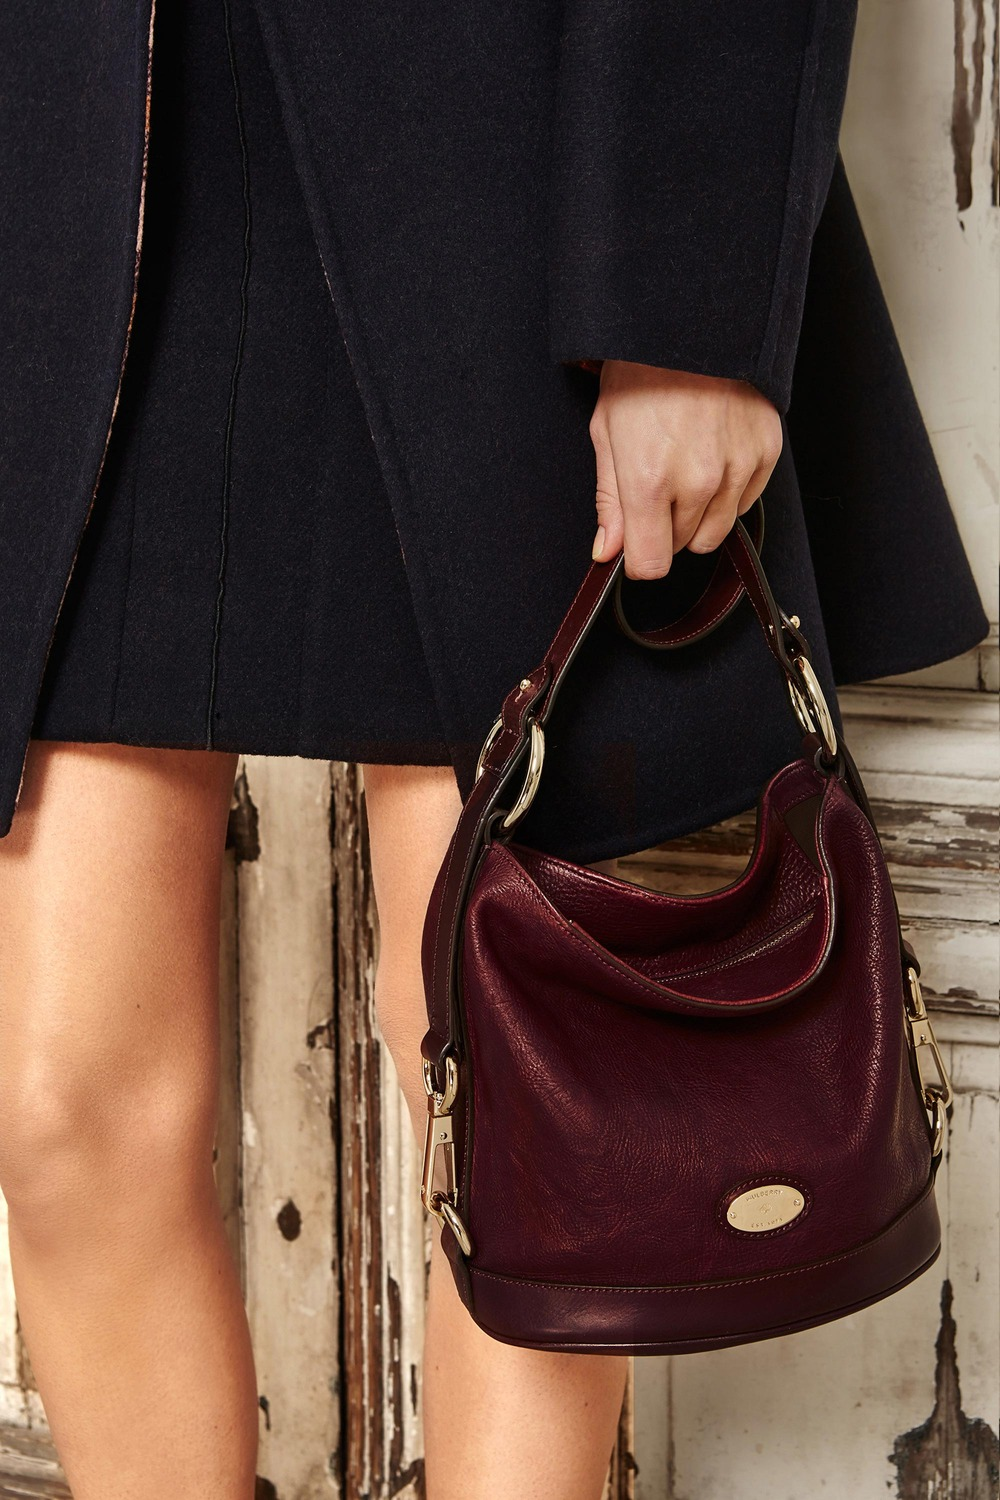 Mulberry Fall 2015 Runway Bag Collection Featuring The